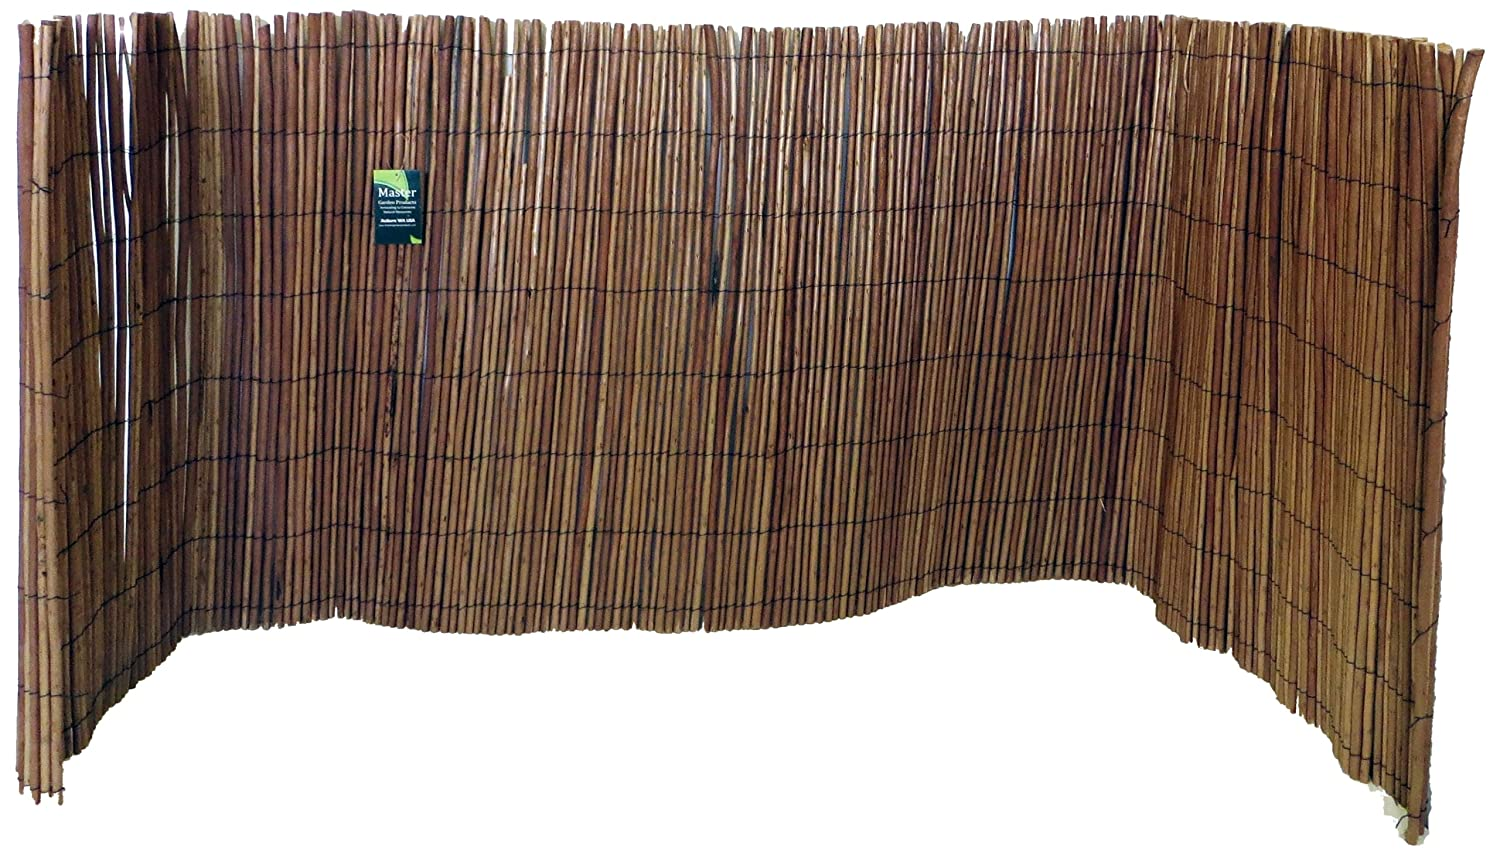 Amazon.com : Master Garden Products Willow Fence Screen, 5 by 14 ...